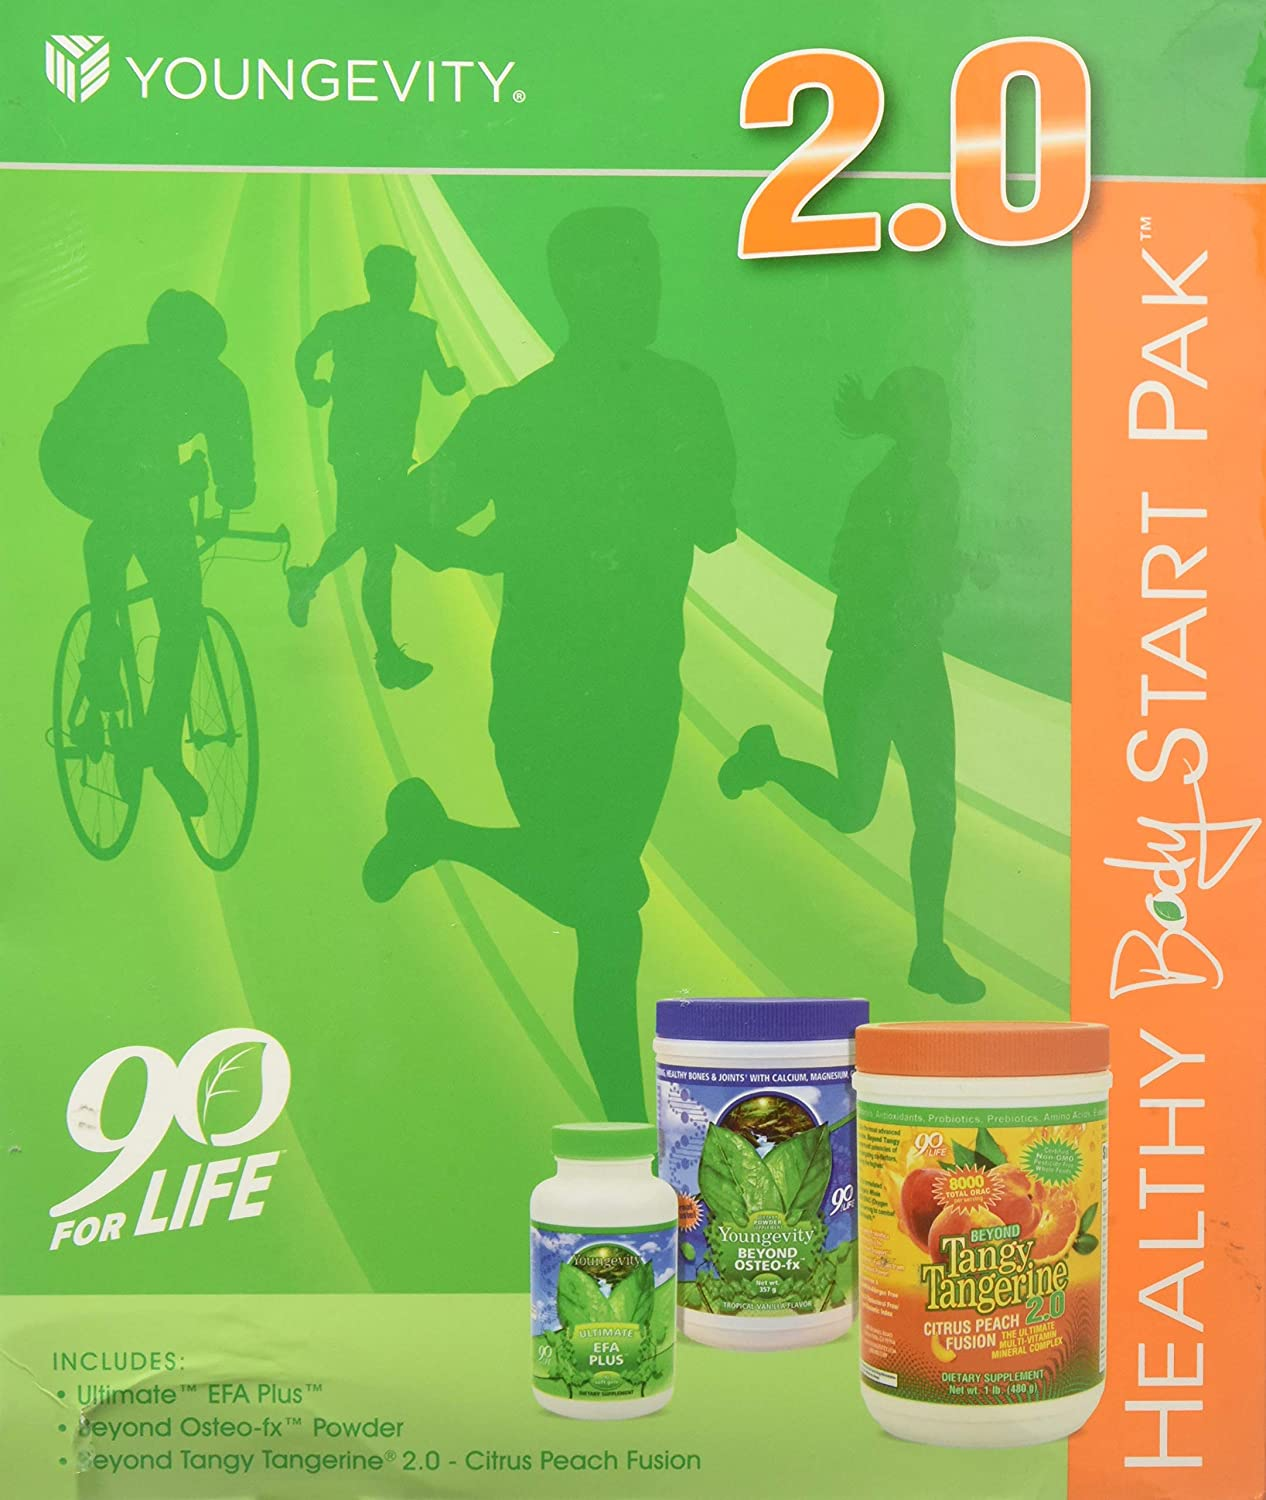 Youngevity Healthy Body Start Pack 2.0 Beyond Tangy Tangerine 2.0, Osteo FX Powder, Ultimate EFA Plus Worldwide Shipping by Youngevity